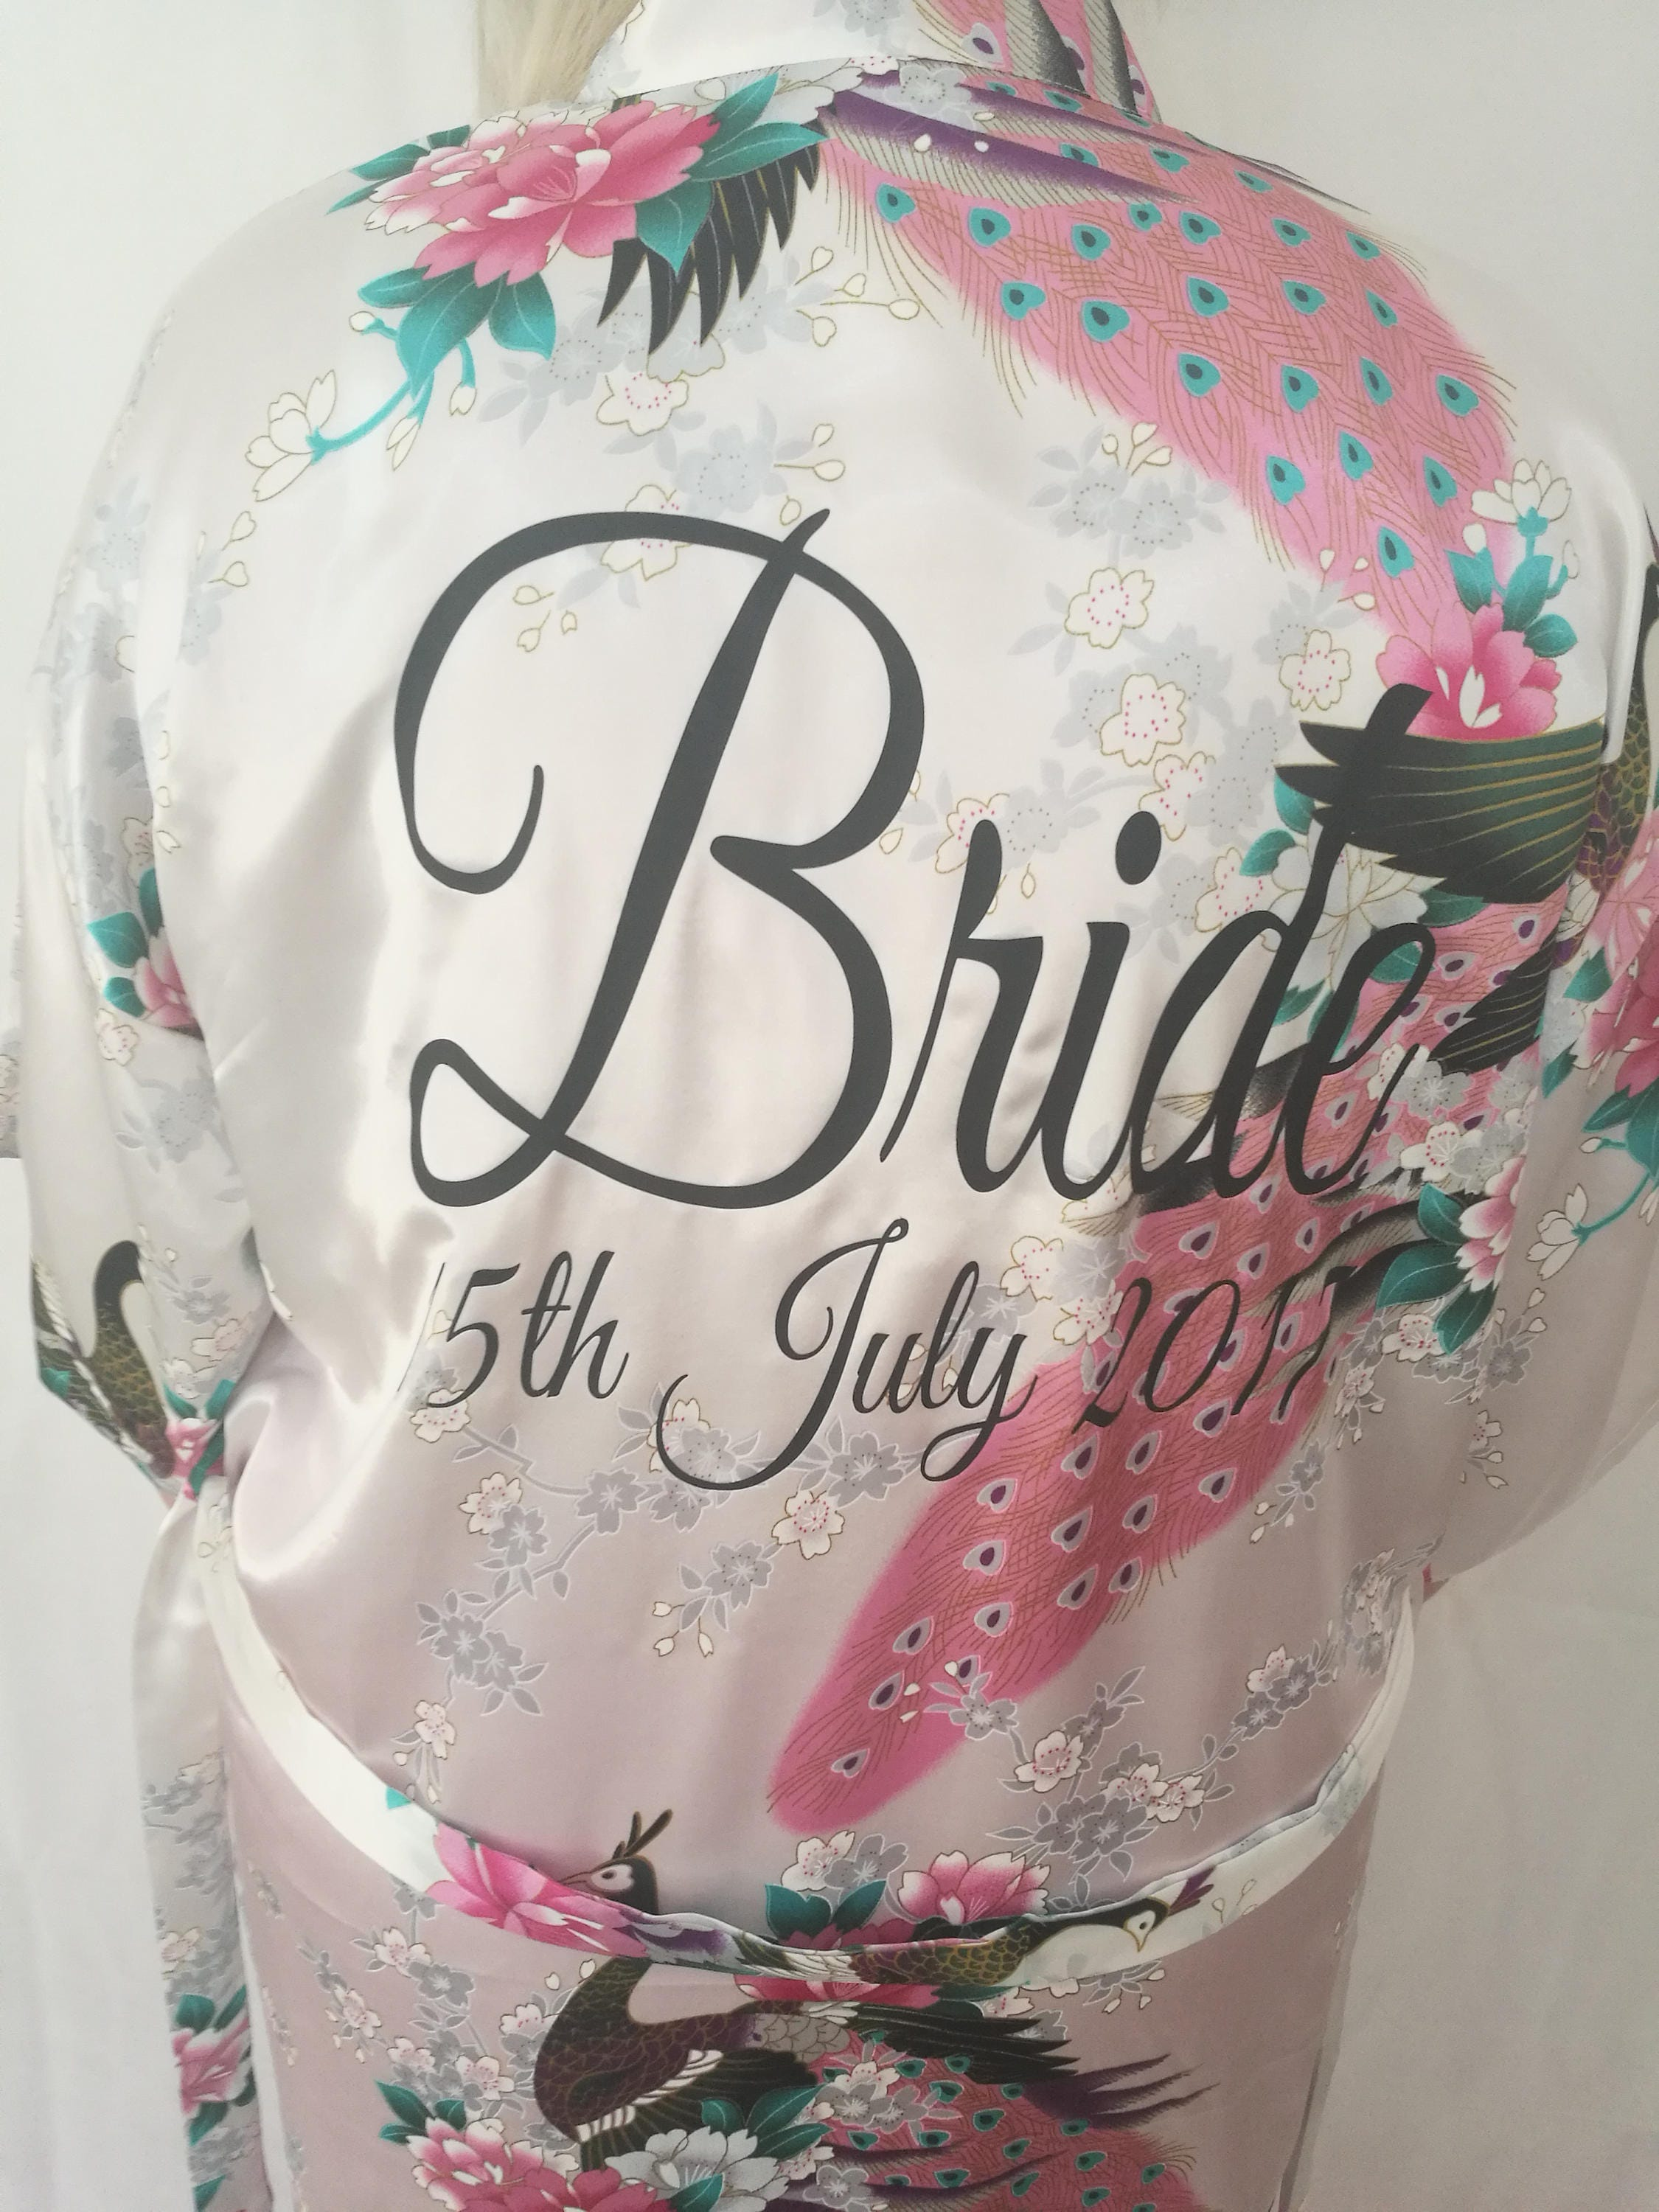 66803f0c576a8 Personalised Bridal robes, Floral Kimonos, Wedding dressing gowns, Bridesmaid  gifts, Personalised dressing gown, Satin robe. 1